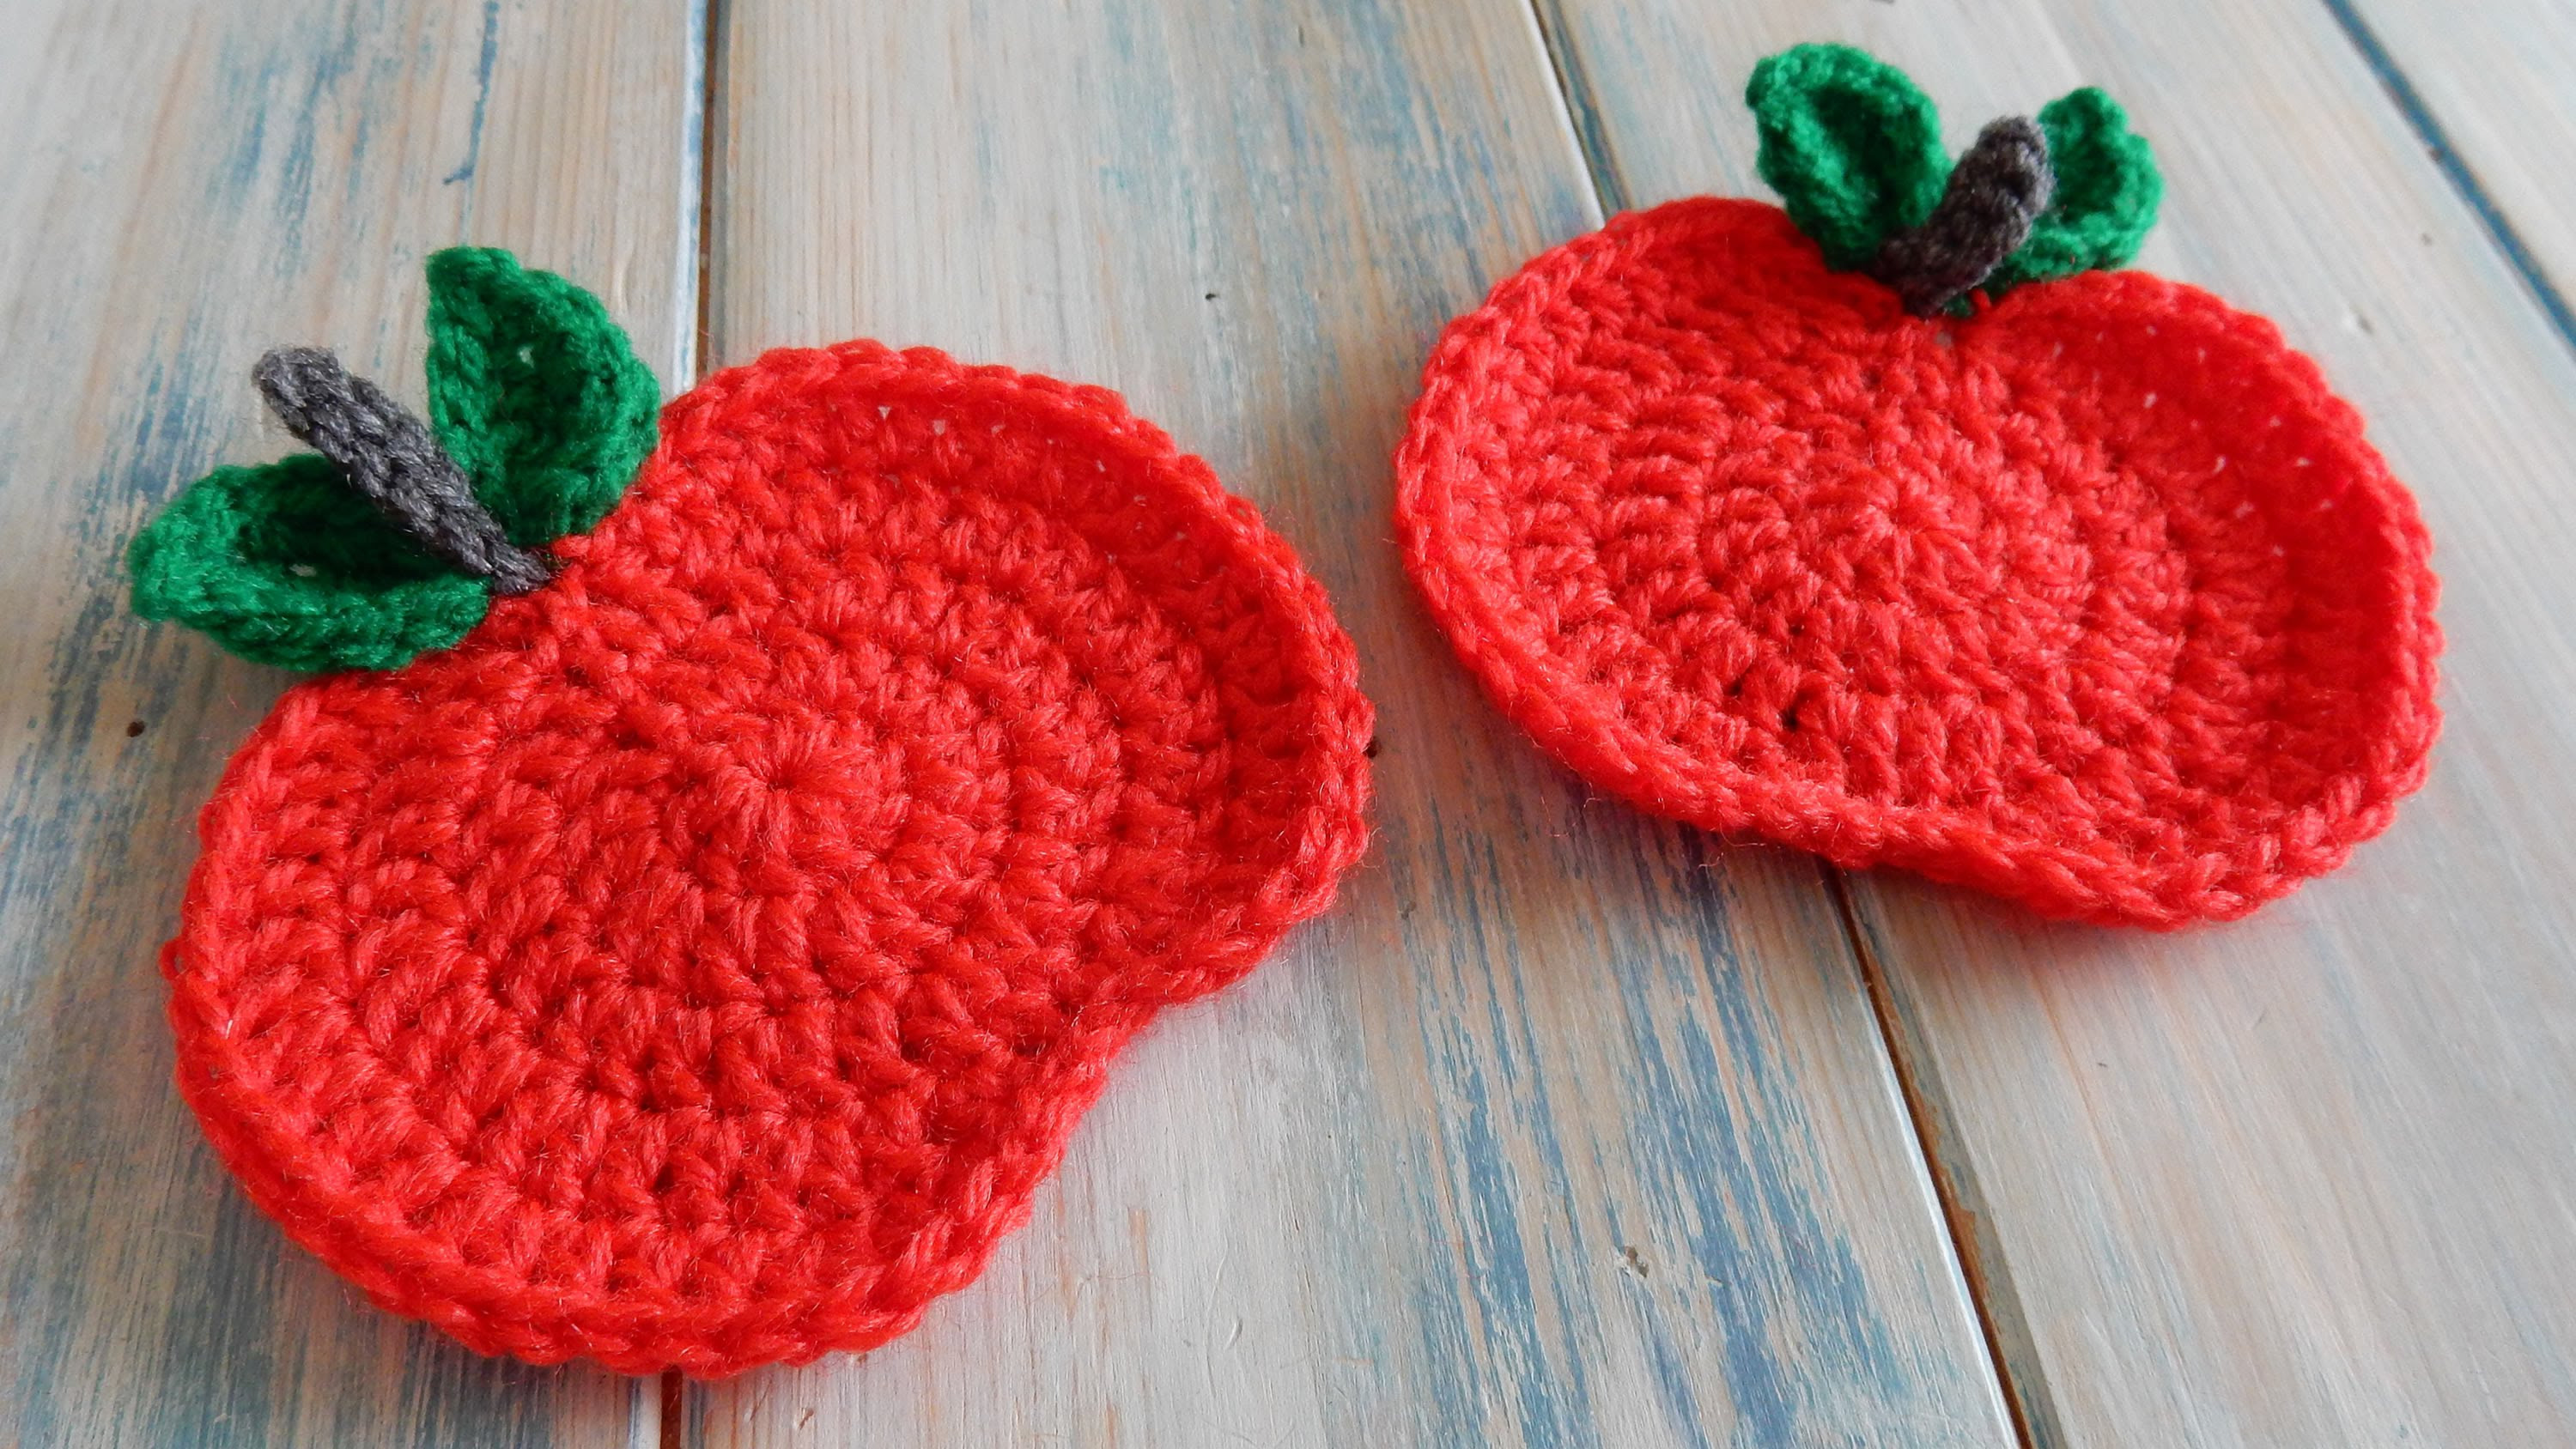 Crochet Potholder Pattern Inspirational 59 Free Crochet Potholder Patterns Of Amazing 43 Pictures Crochet Potholder Pattern